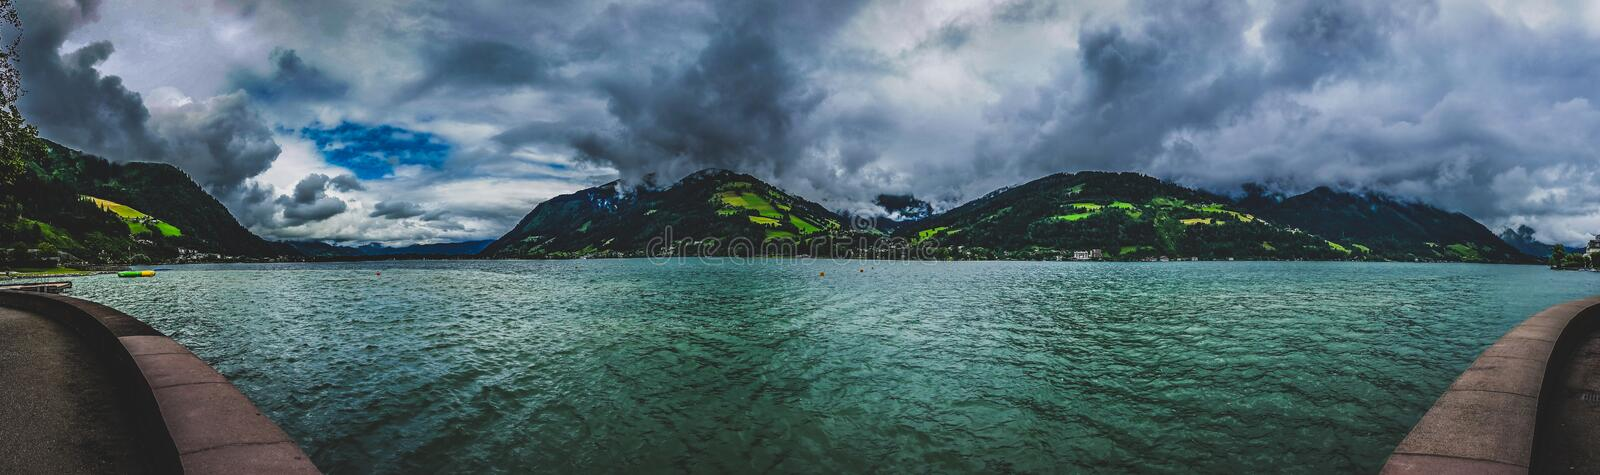 Zell am See Panorama stock image